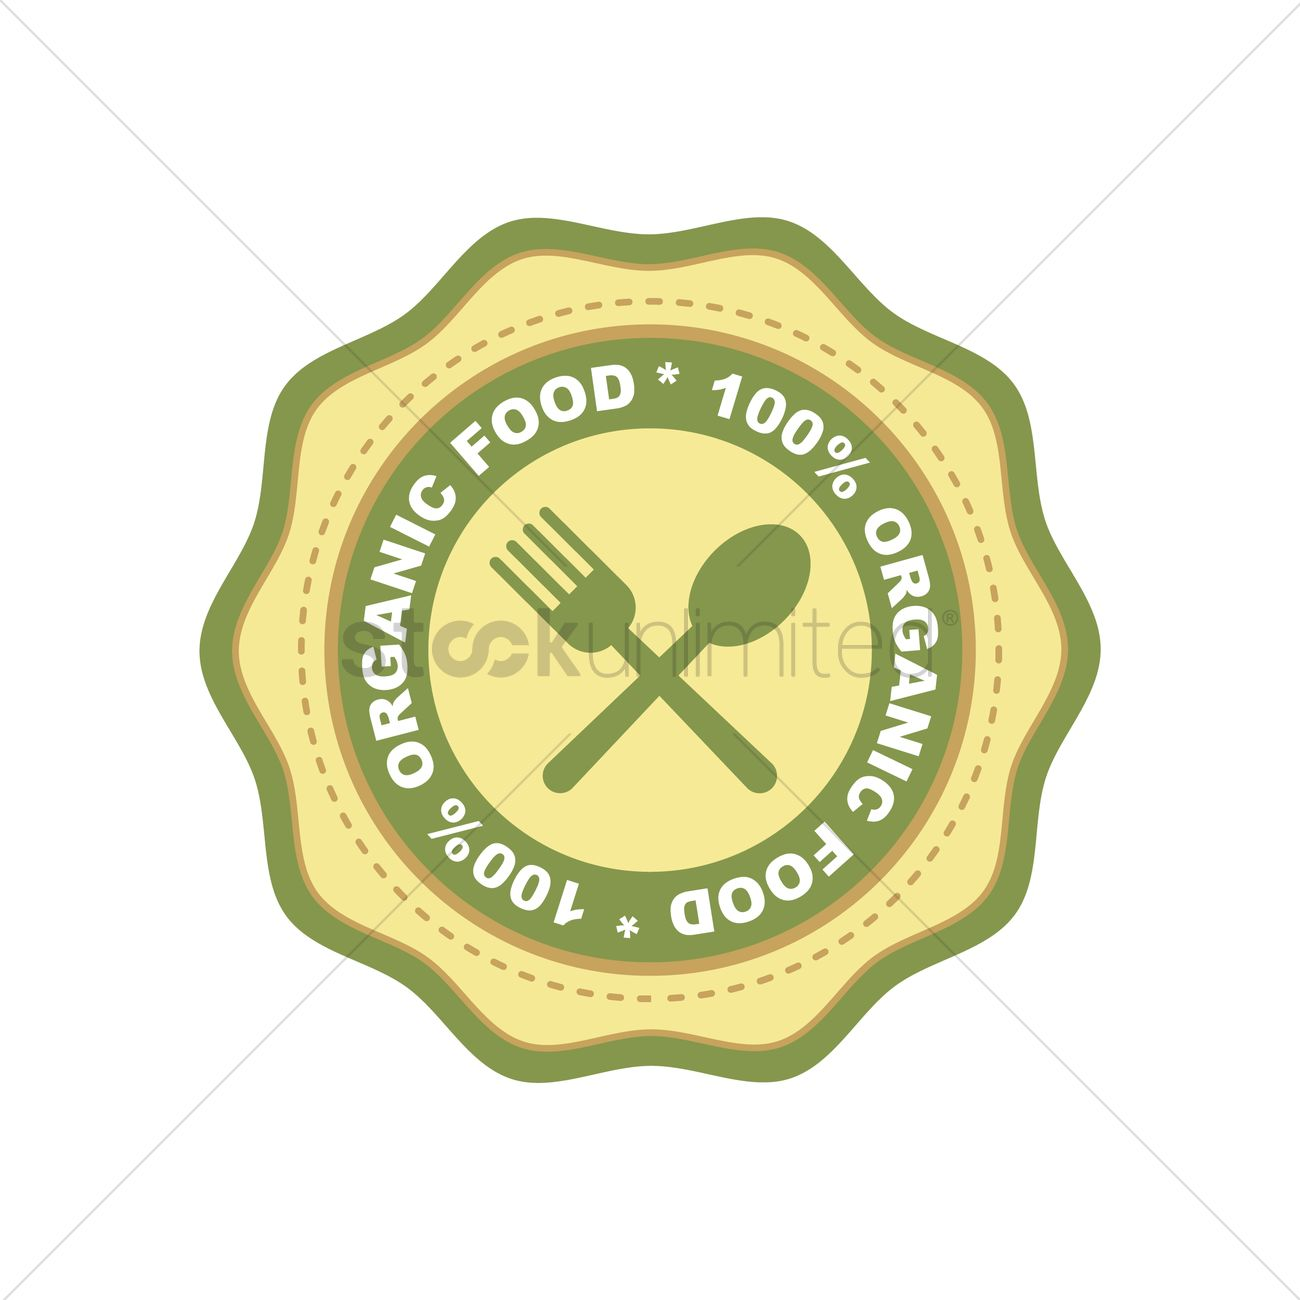 Organic food label design Vector Image - 2029873